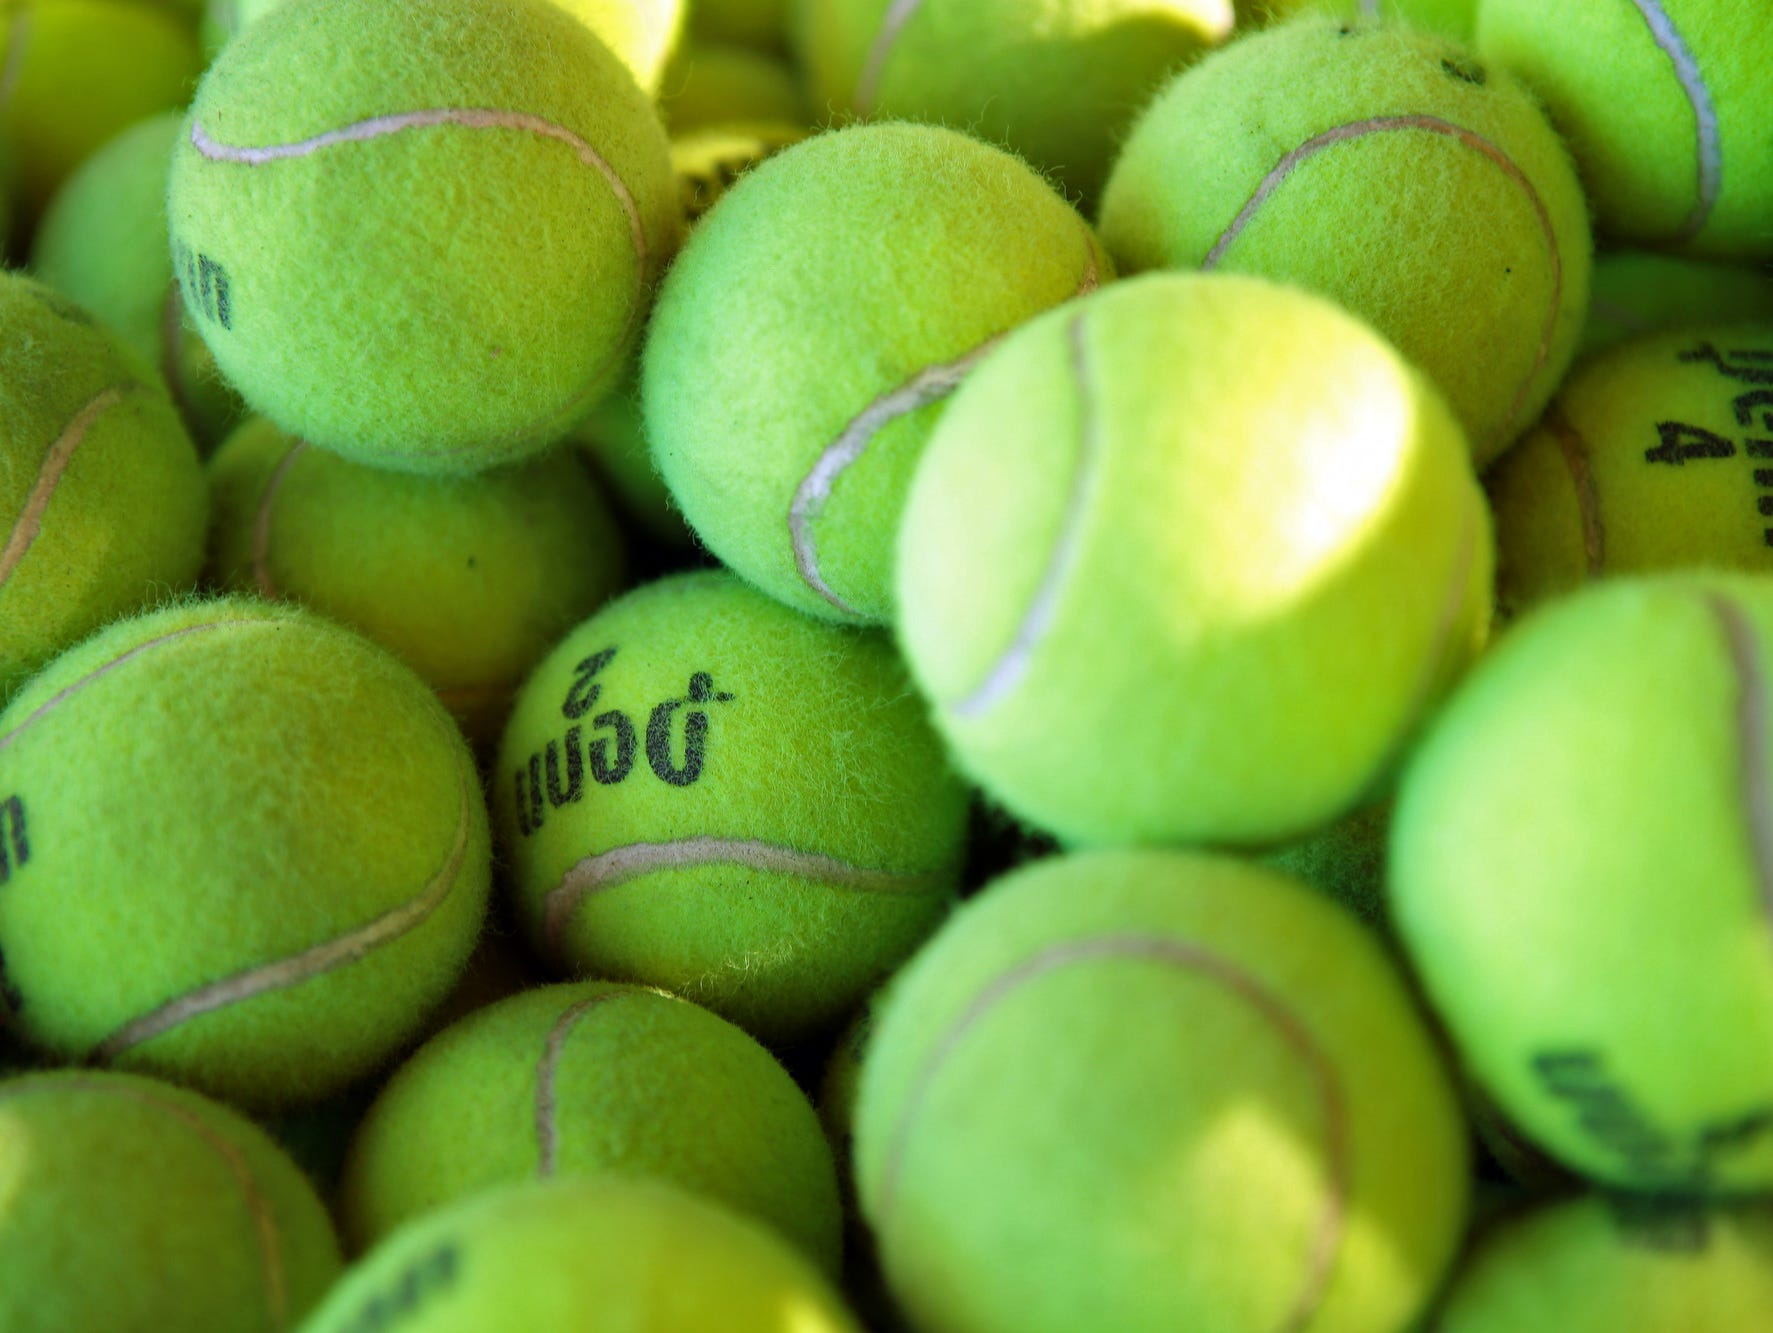 Practice tennis balls are in a bucket at Plaza Racquet Club in Palm Springs, Calif. on March 5, 2015.